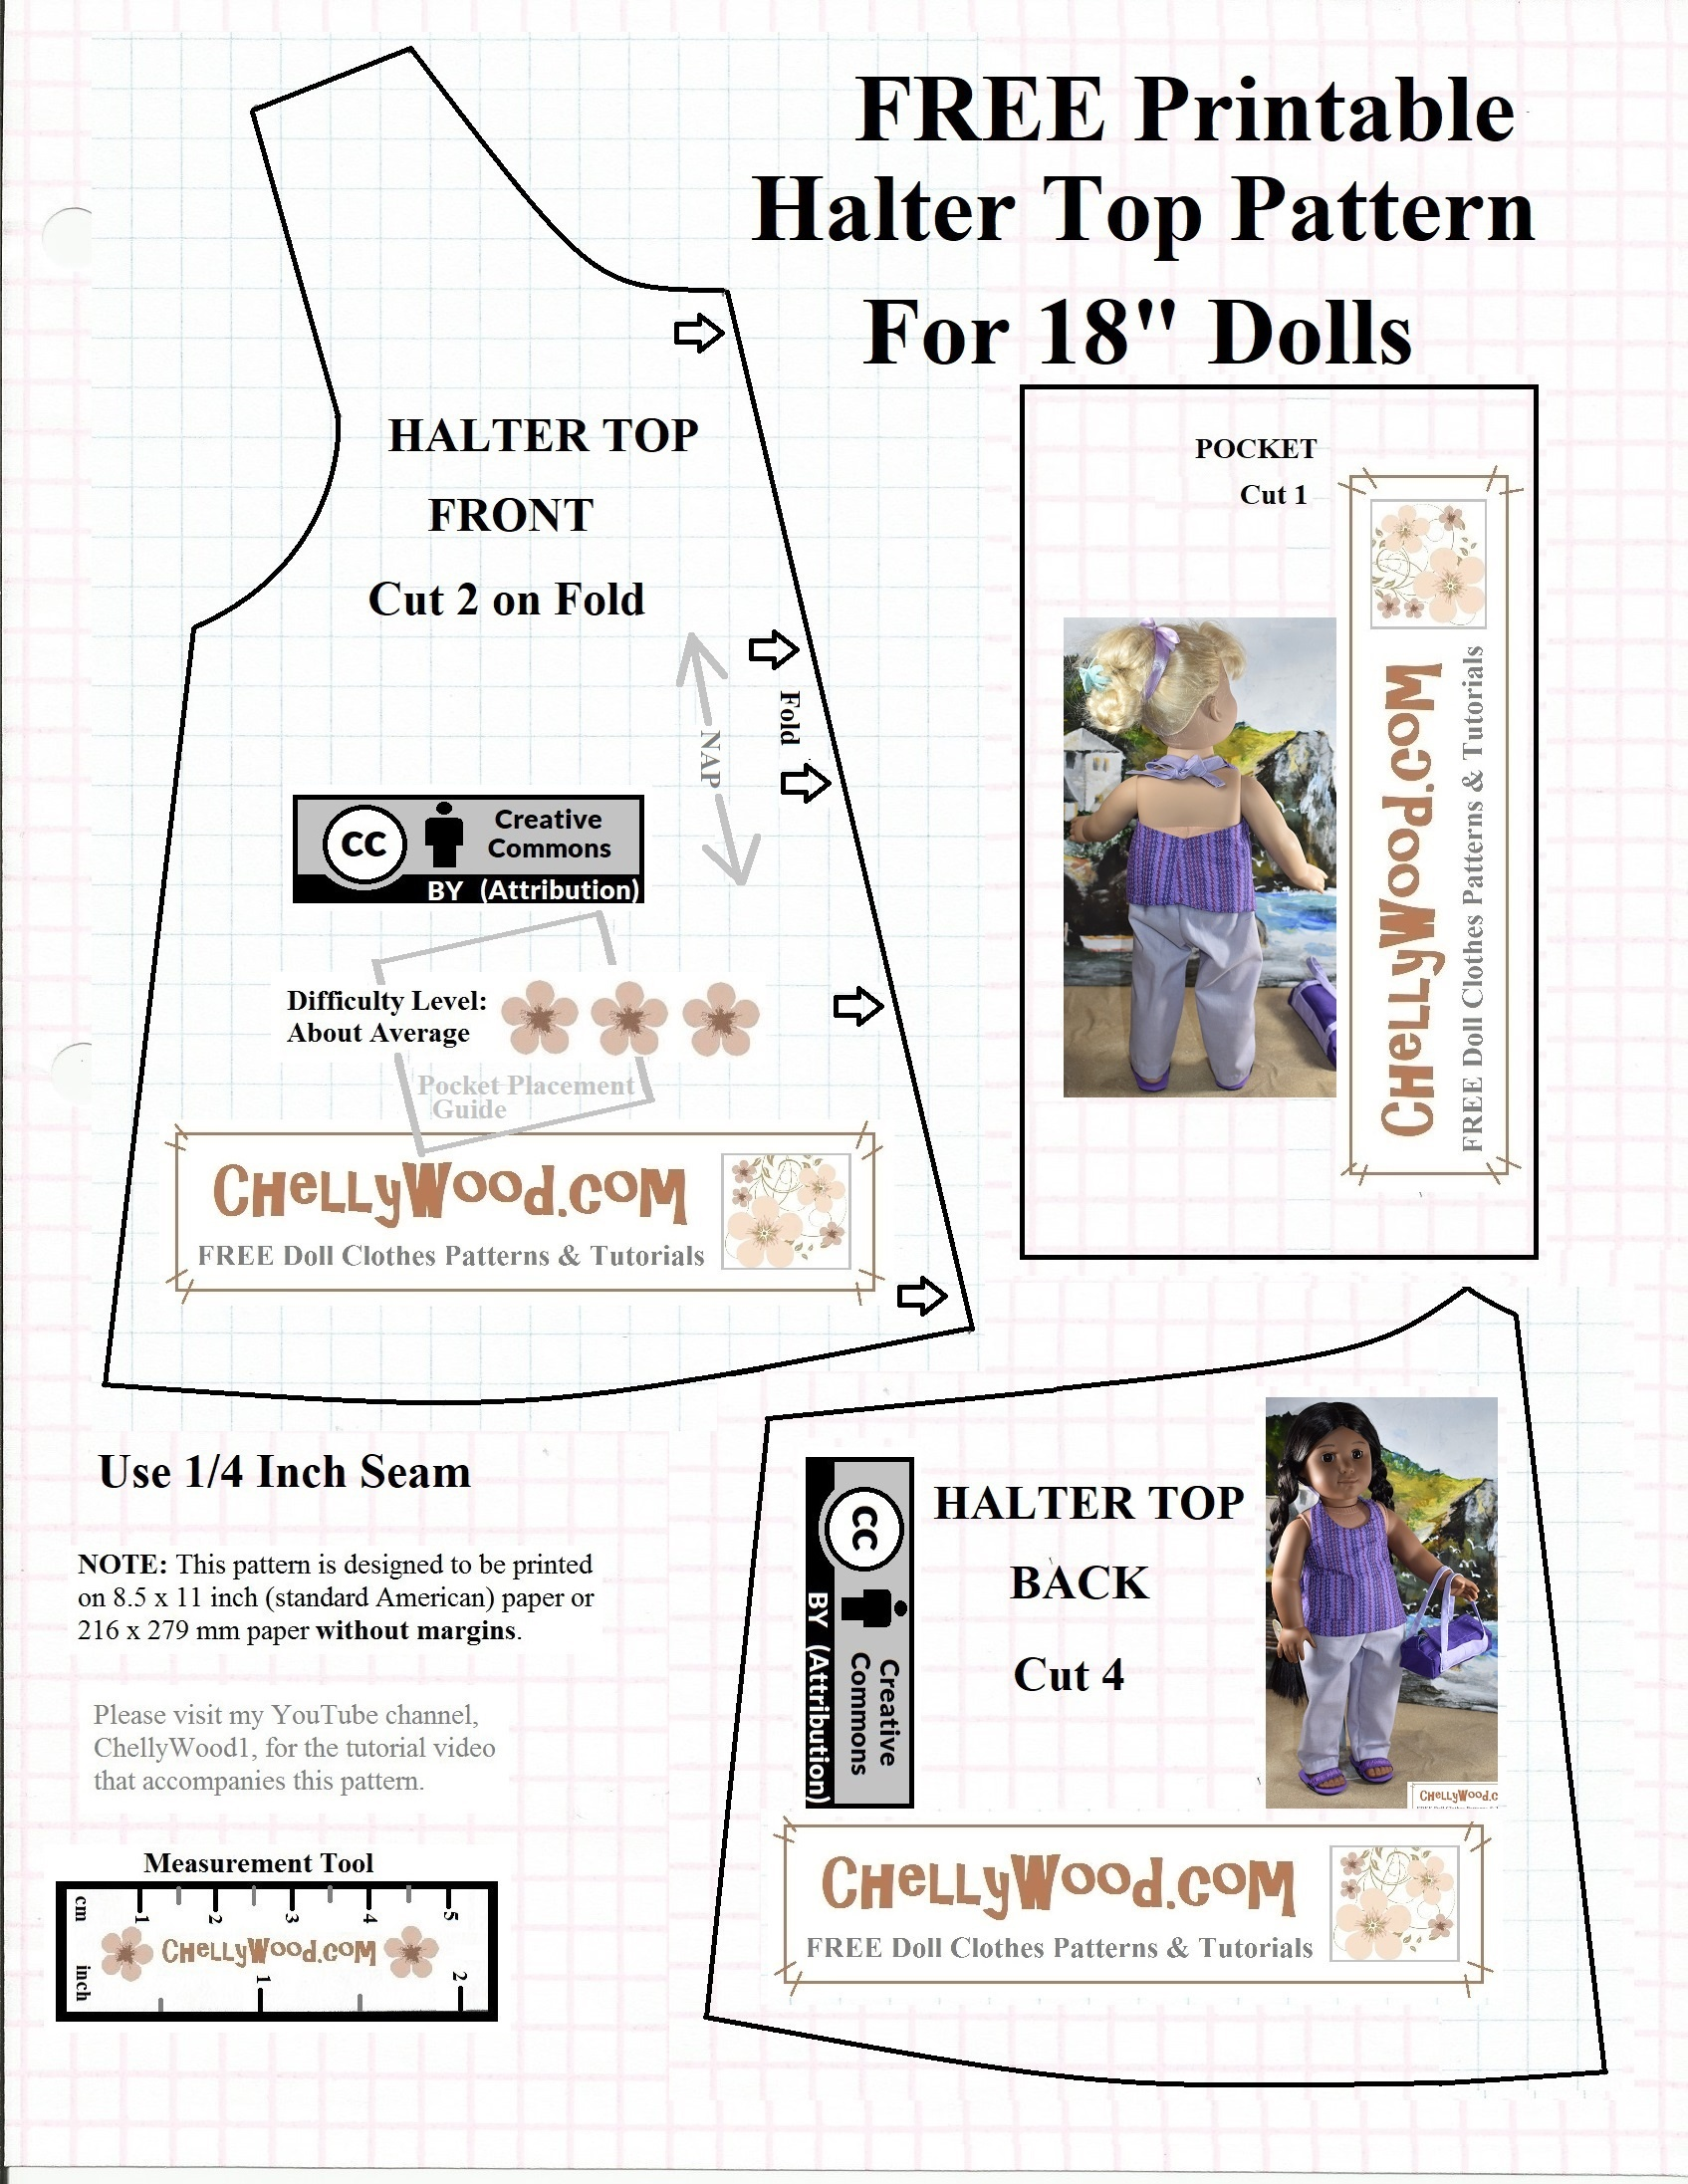 Free #agdoll Summer Shirt Pattern @ Chellywood #sewing 4#dolls - 18 Inch Doll Clothes Patterns Free Printable